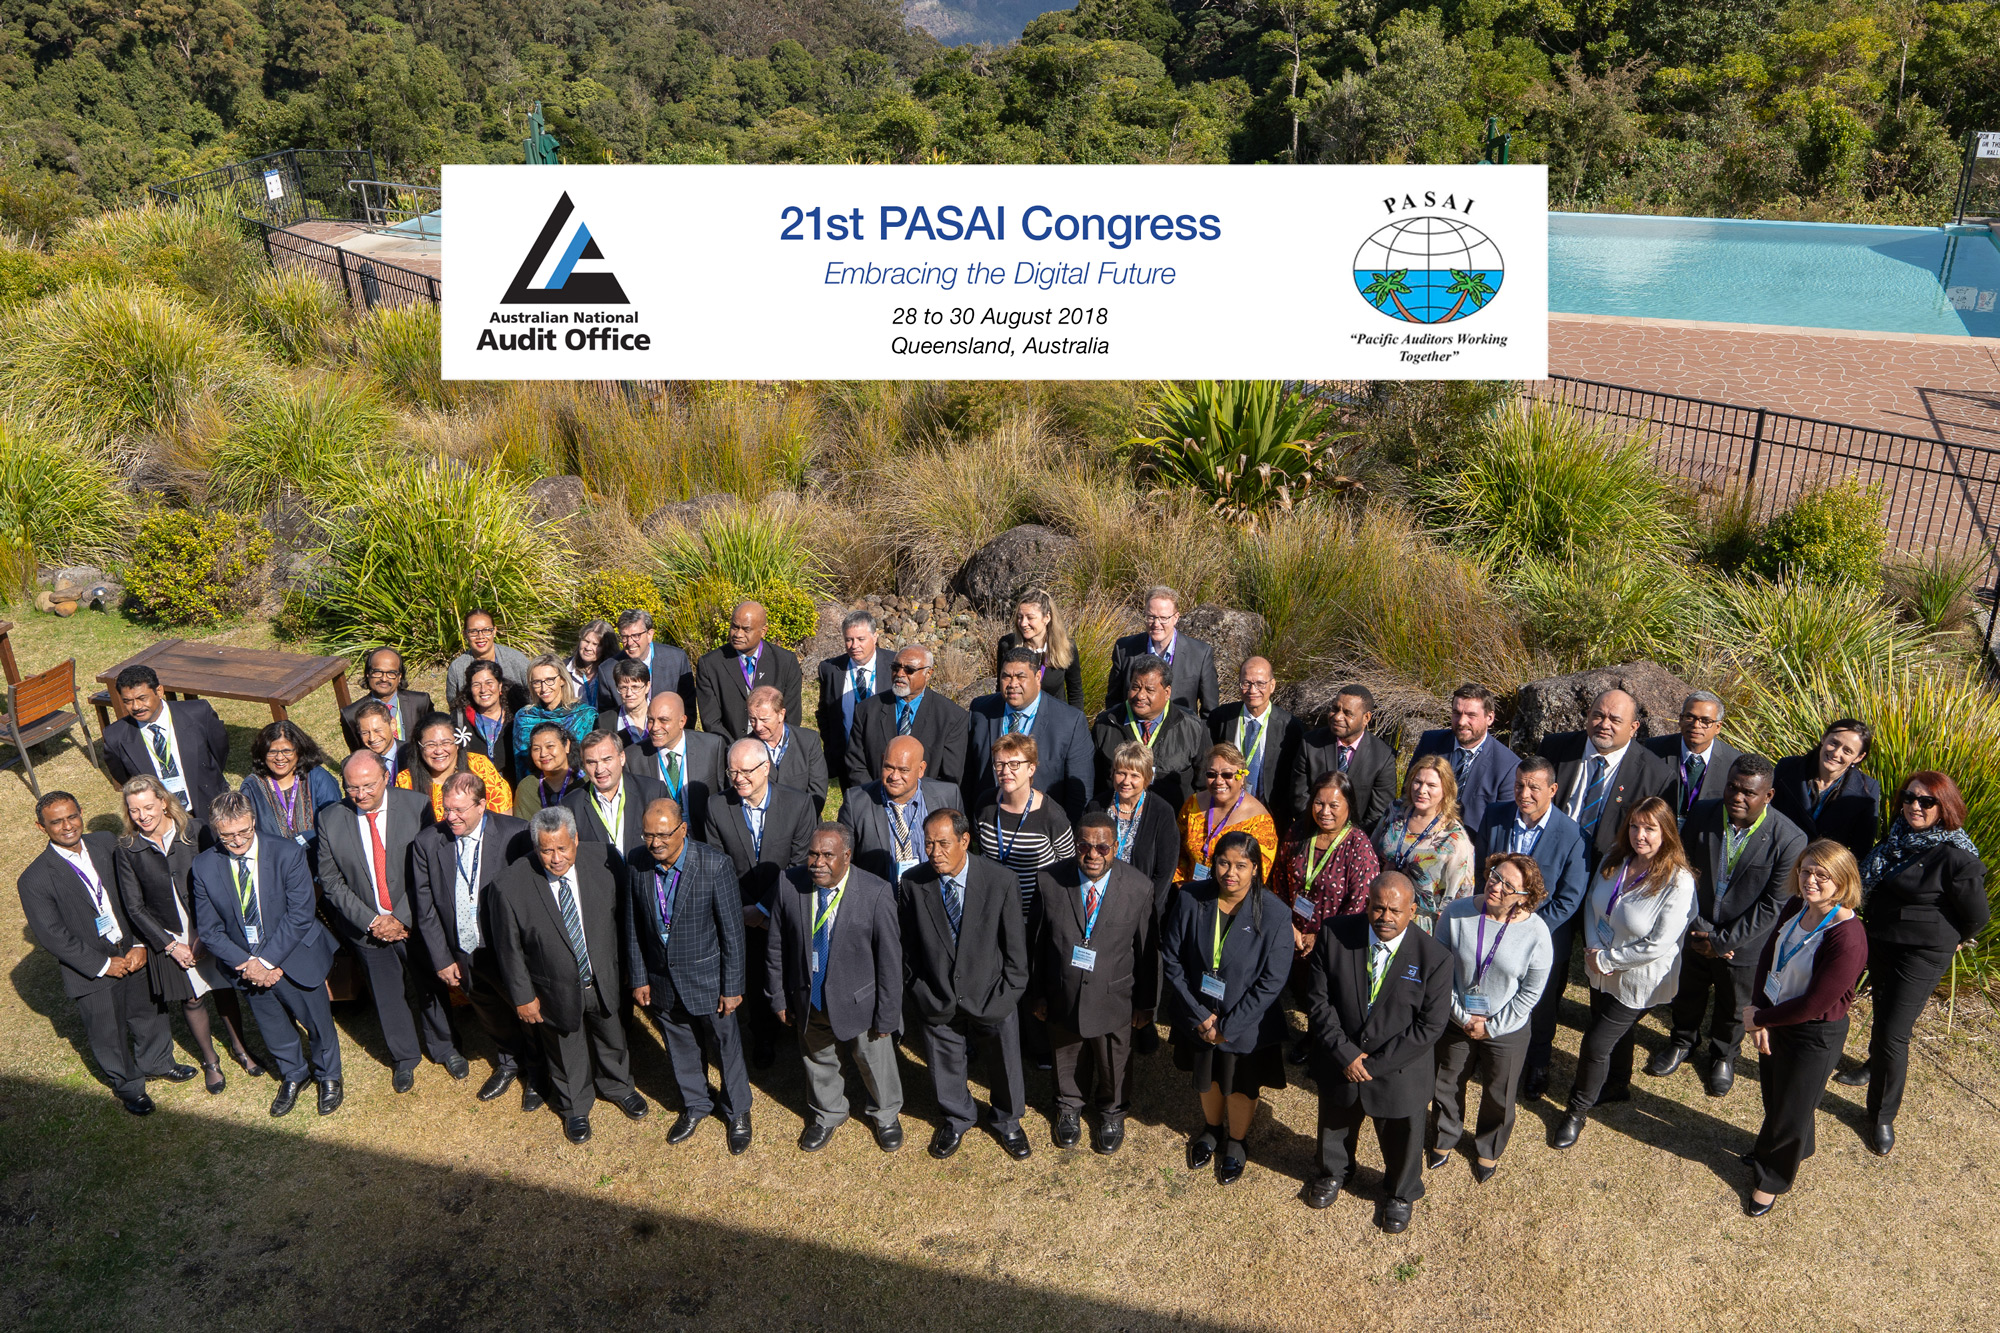 21st PASAI Congress-Queensland Australia.jpg